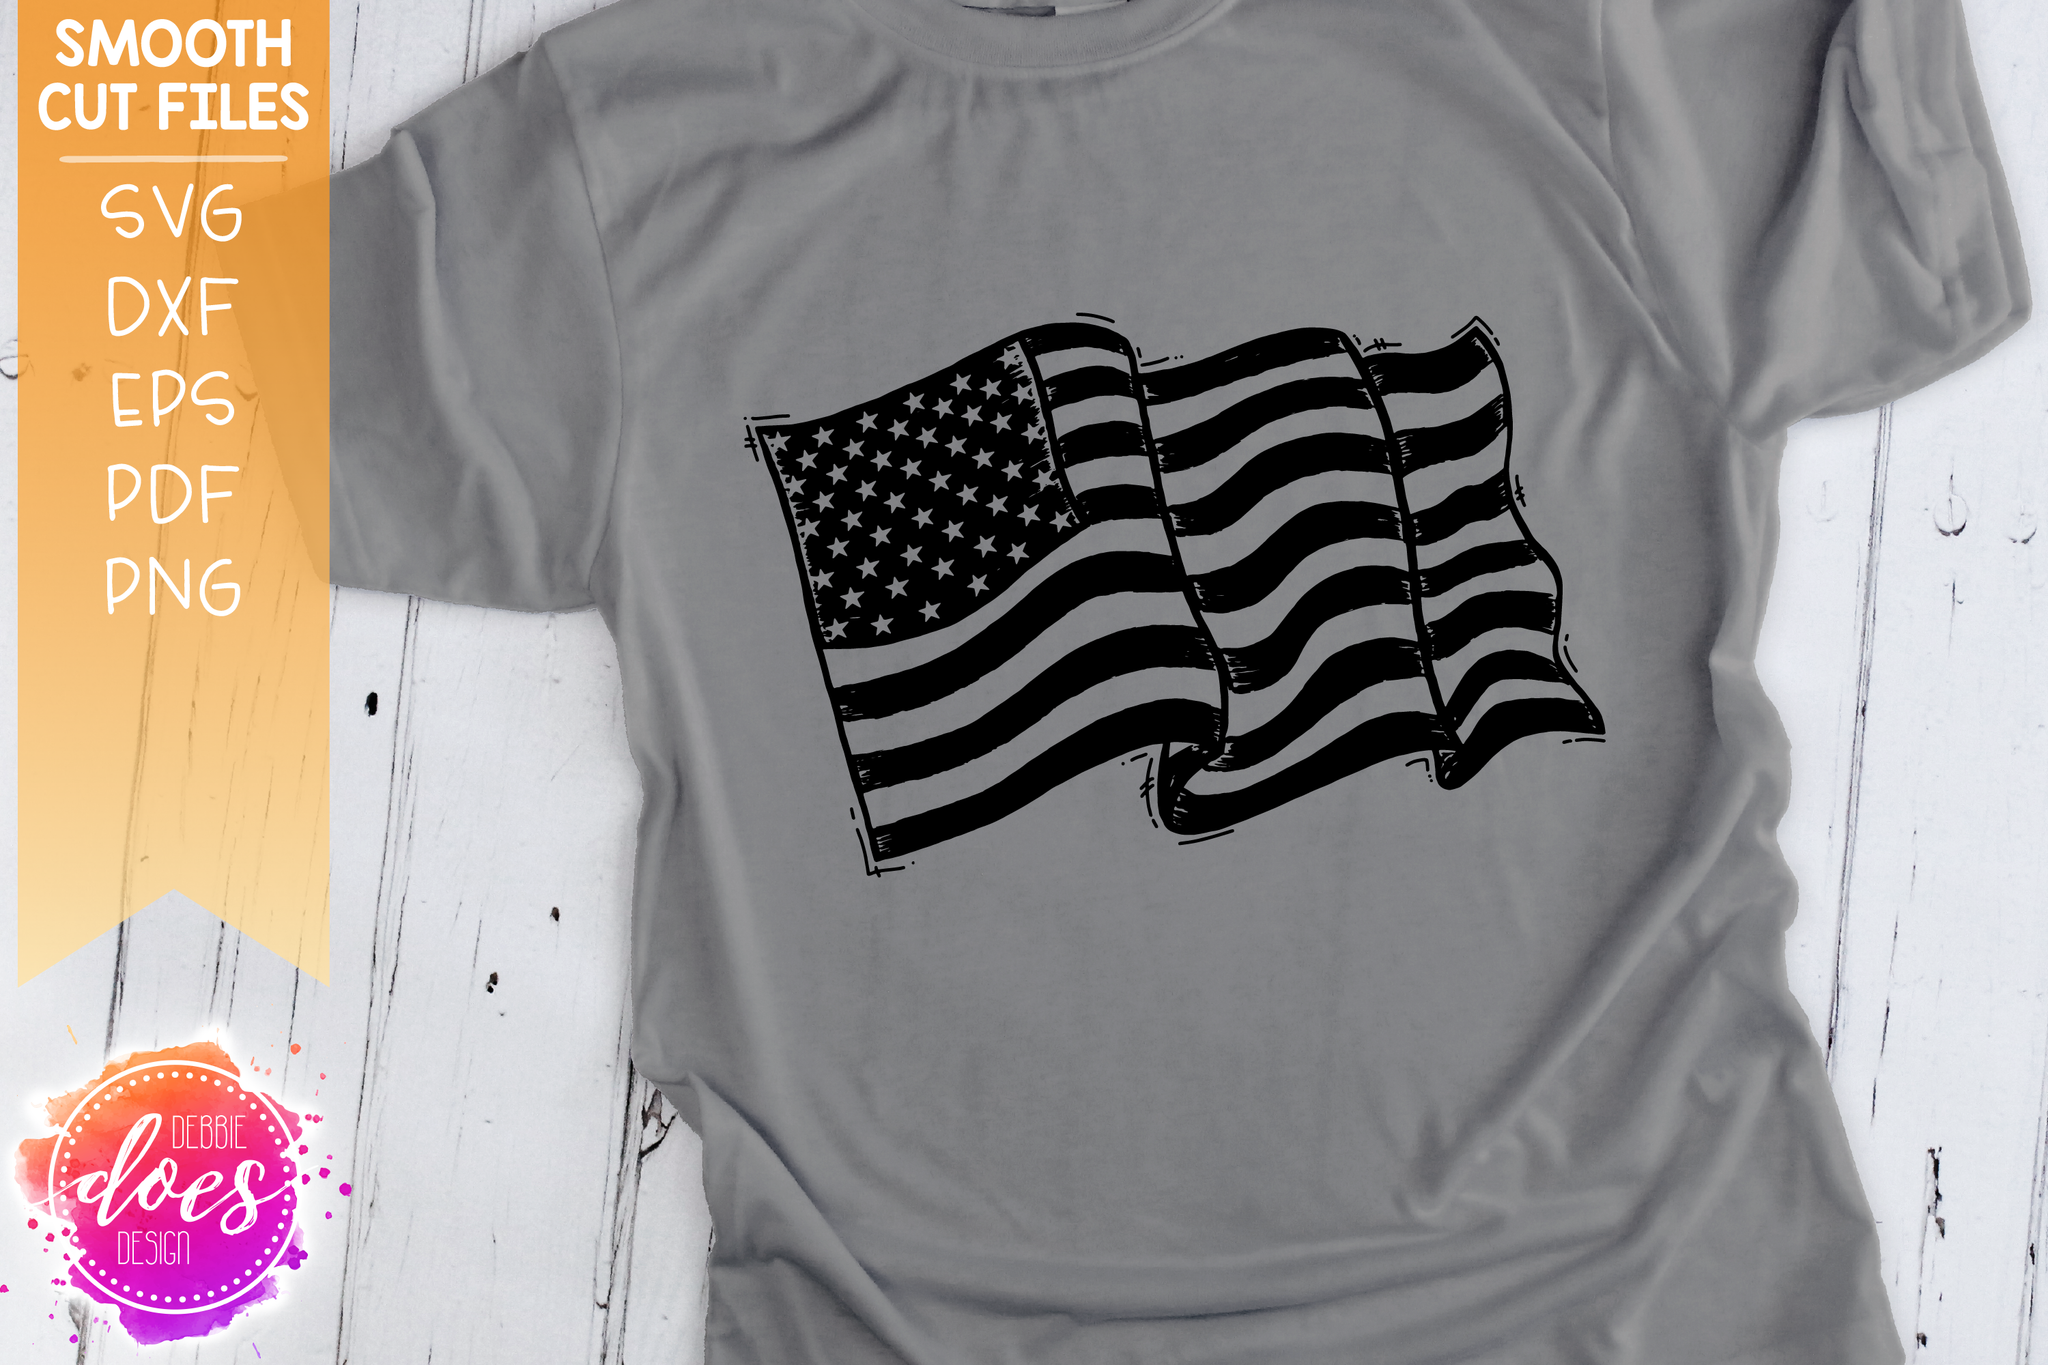 Hand Drawn Distressed American Flag - SVG File